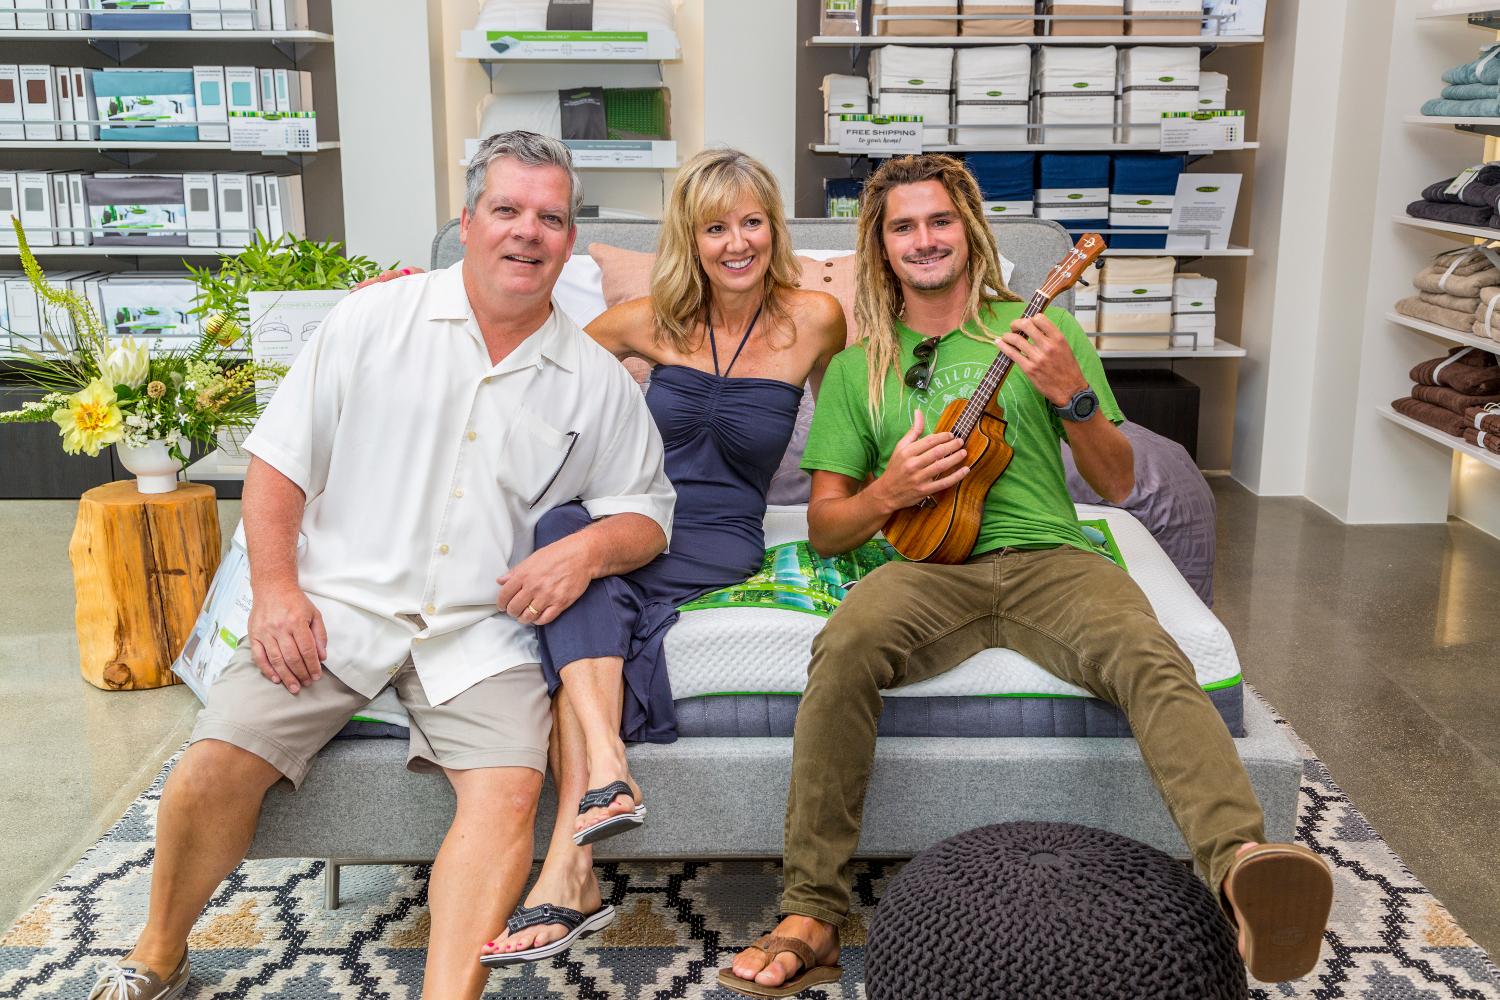 kevin and lisa long owners of cariloha in huntington beach ham it up in the store on a bamboo mattress with austin keen world champion skim boarder and